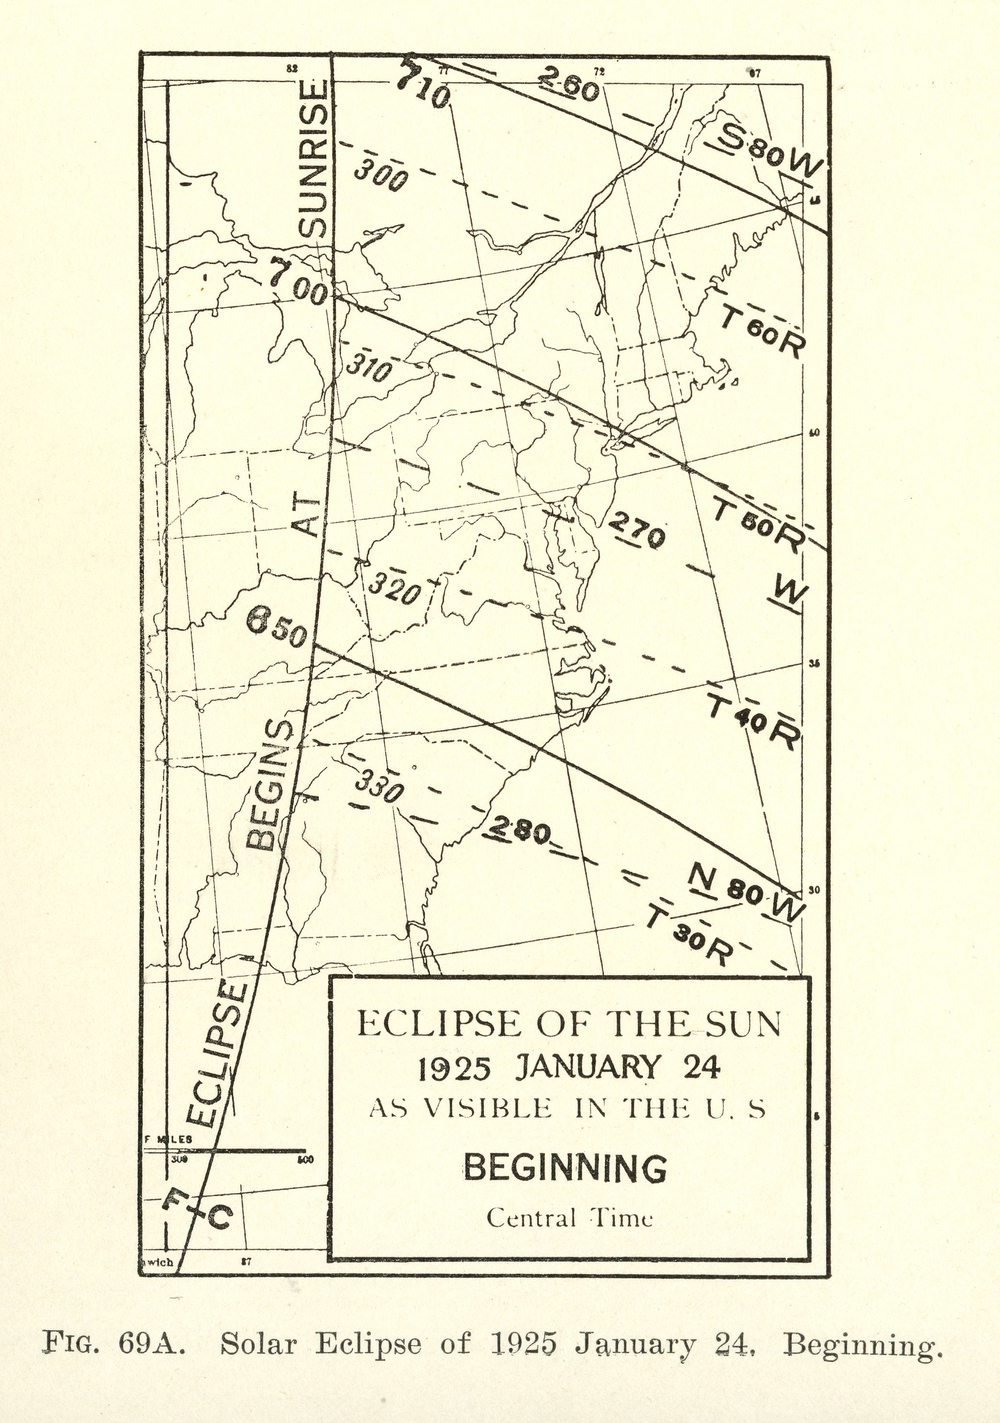 1925_January_24_TSE_Beginning_Rigge_Graphic_Construction_of_Eclipses_and_Occulatations.jpg